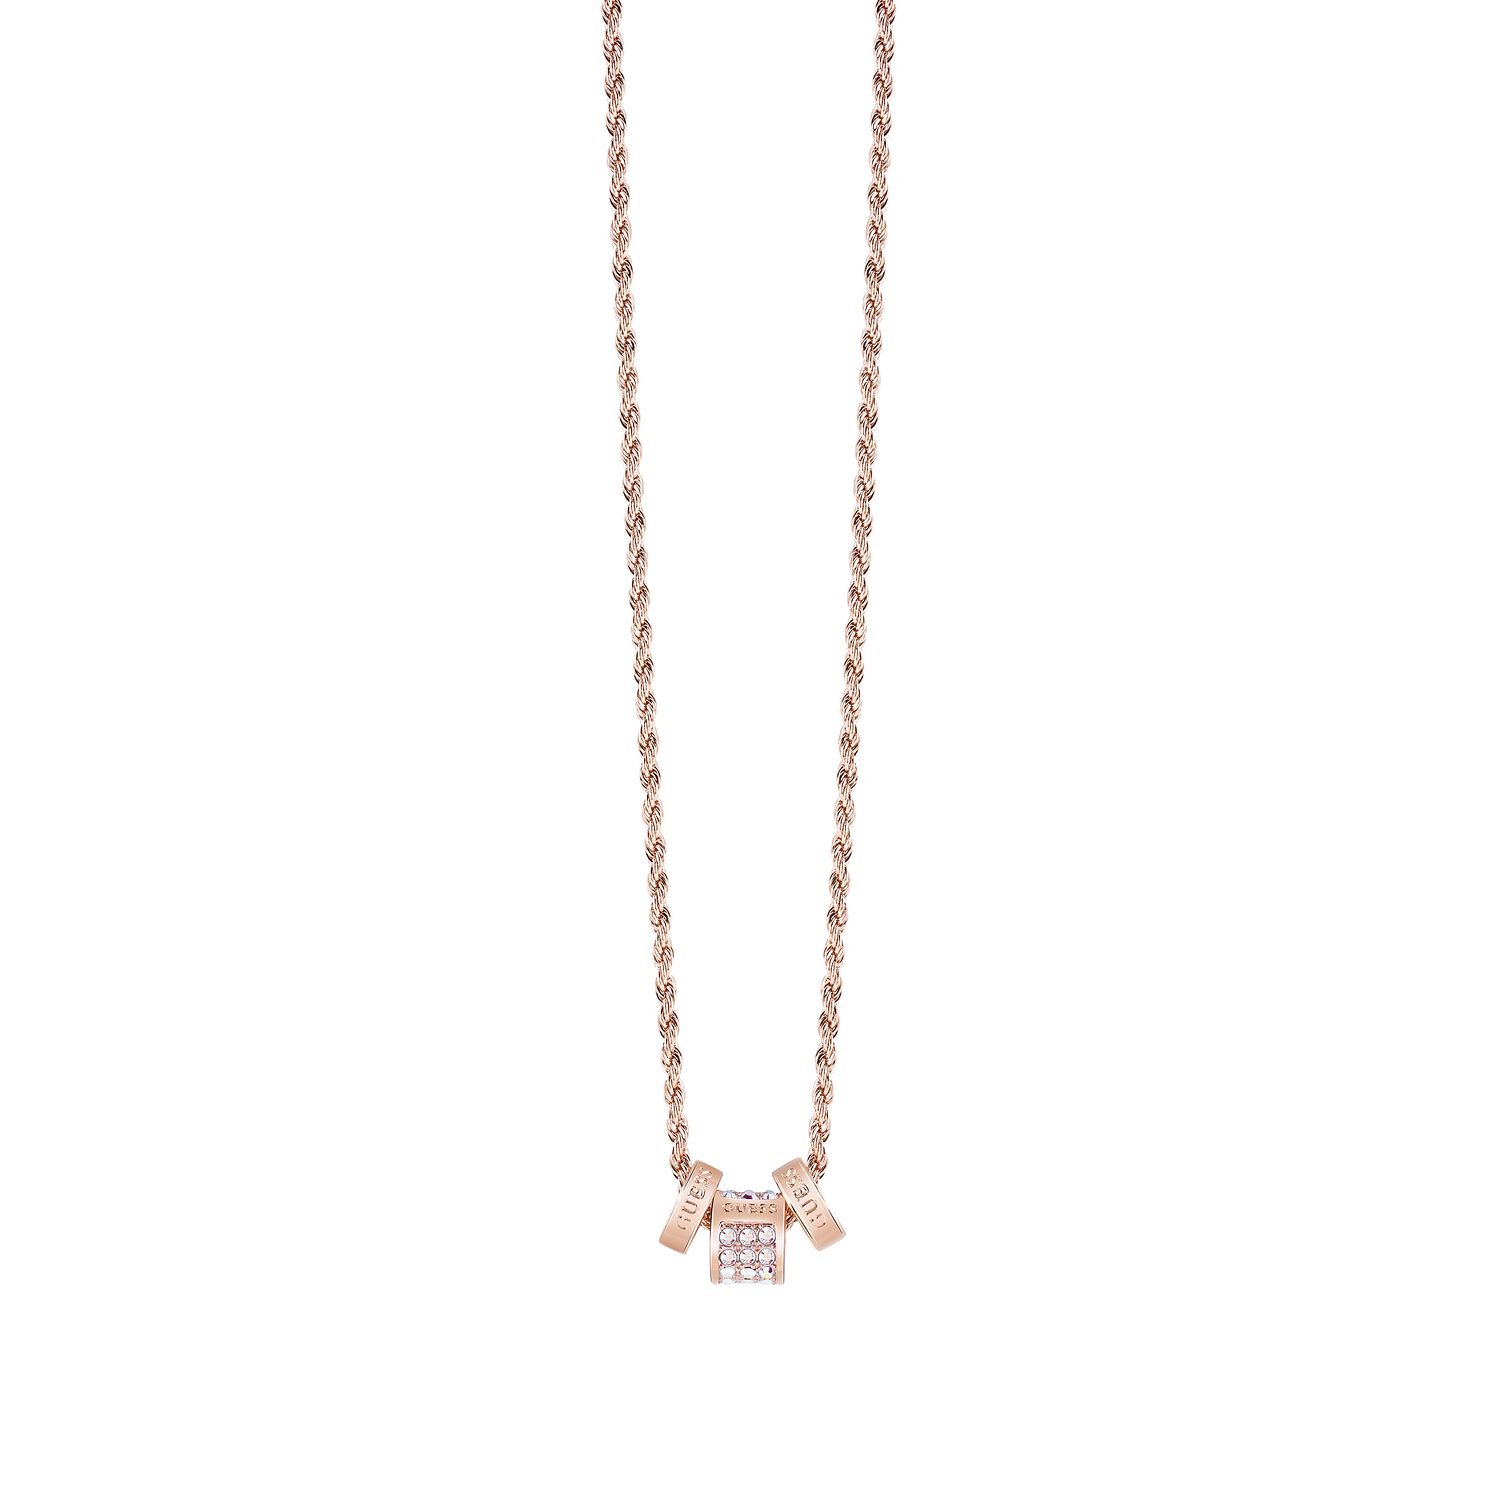 Guess Rose Gold Plated Aurora Crystal Bead Necklace - Product number 8360472